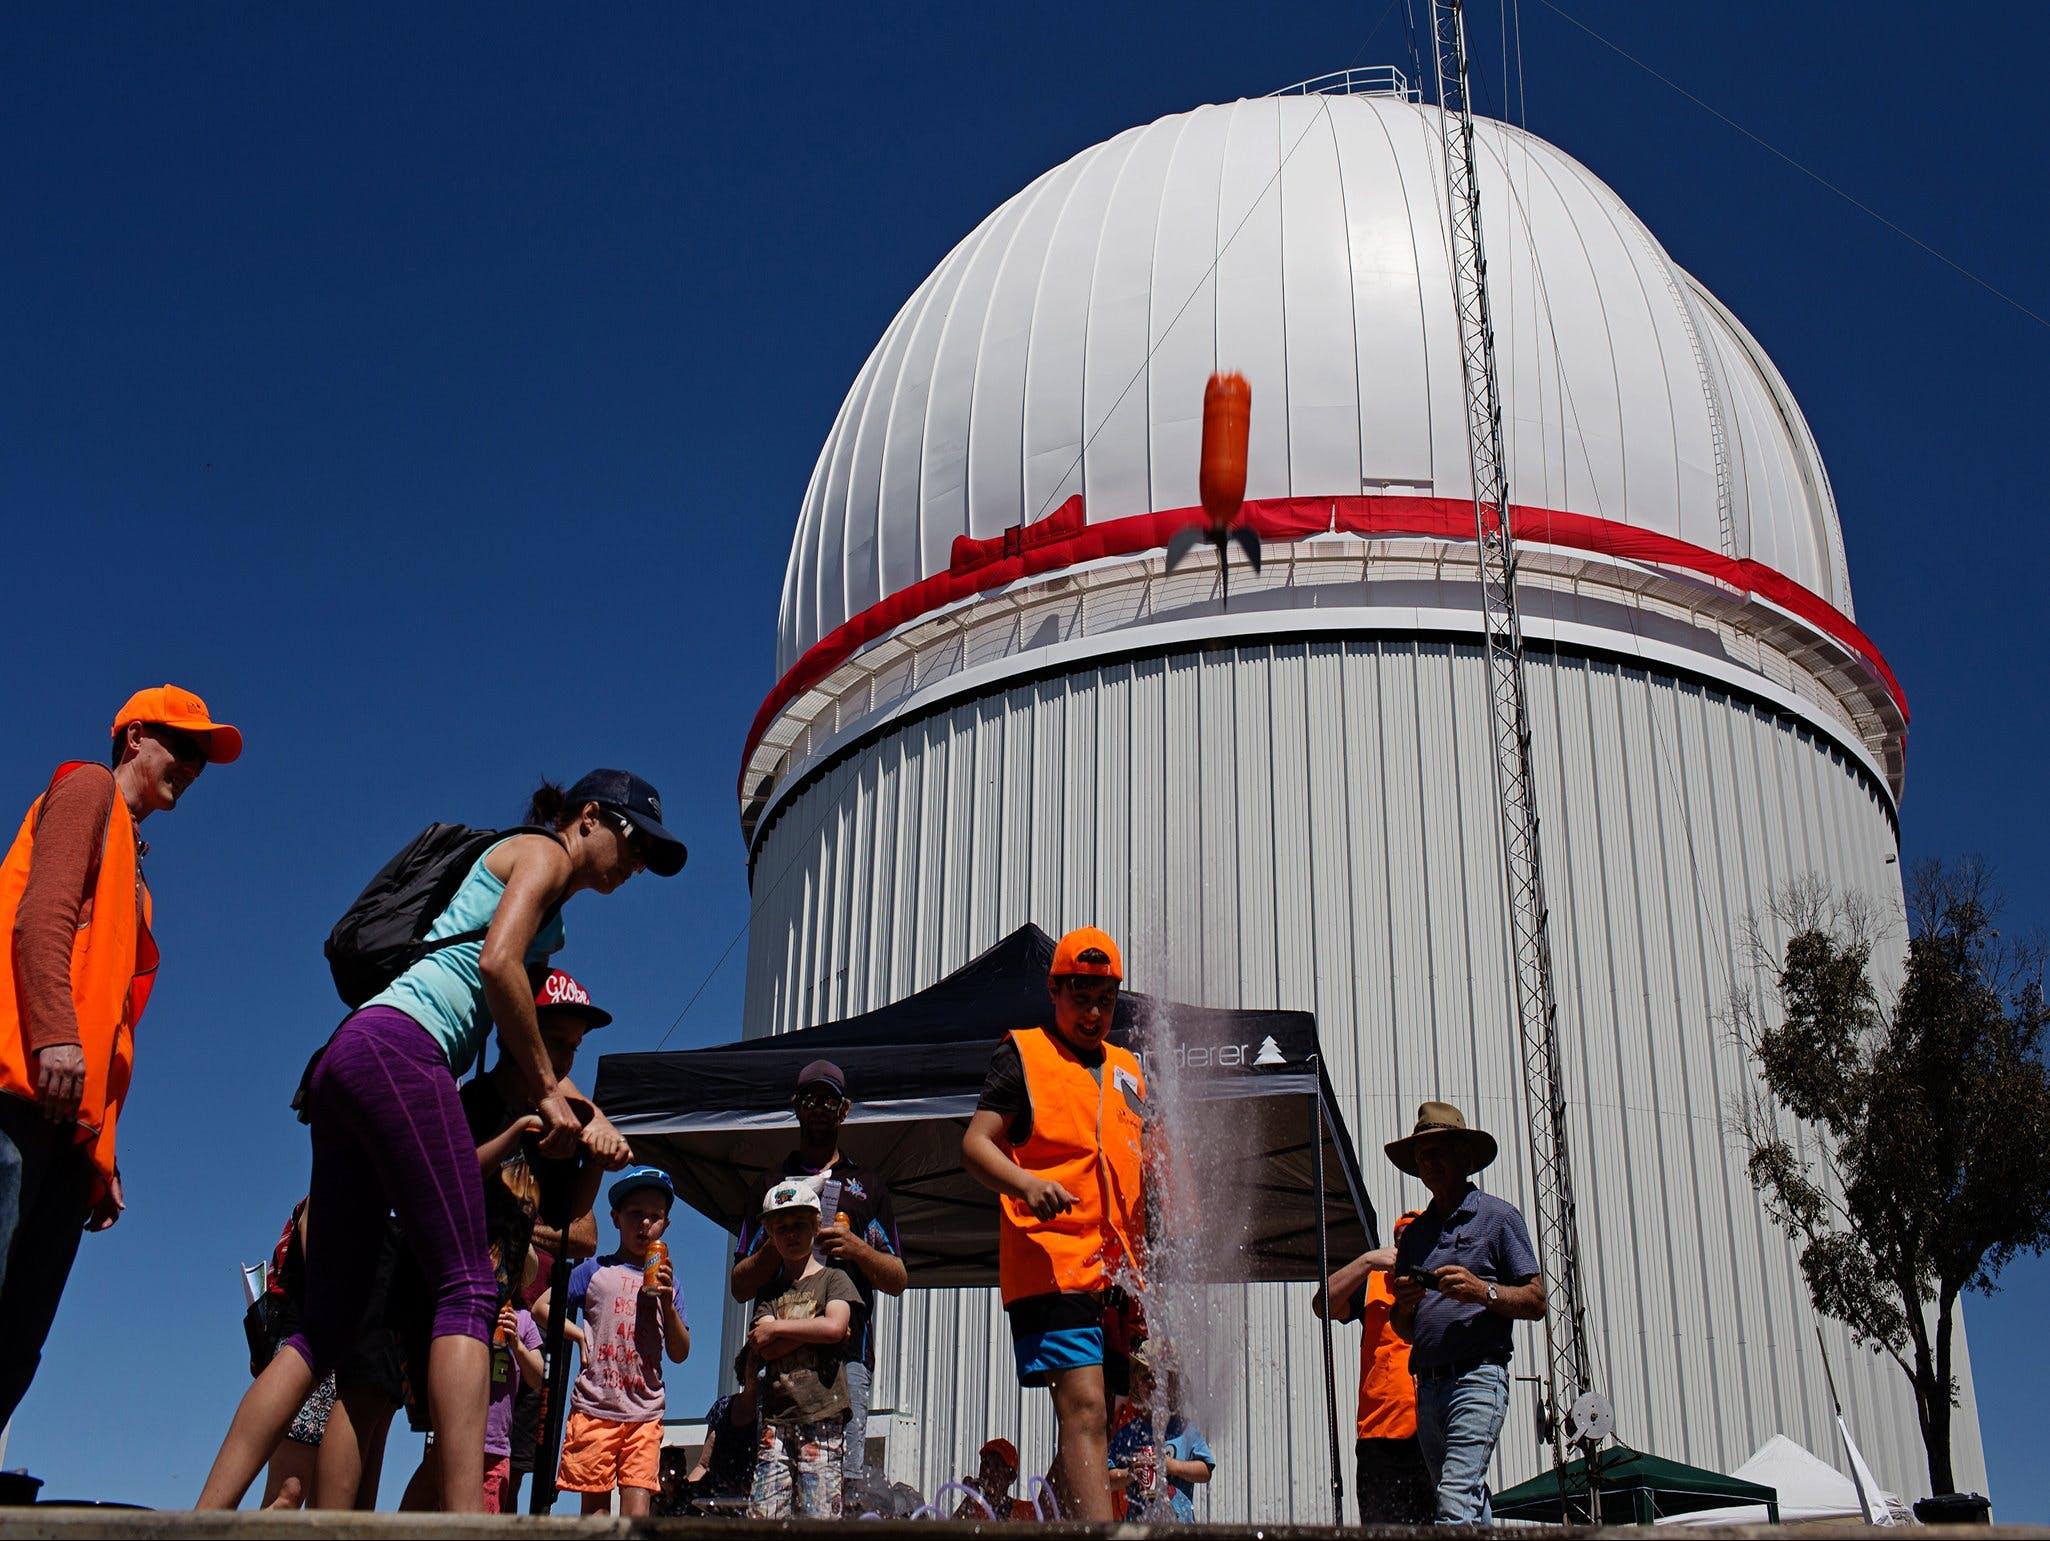 Siding Spring Observatory Open Day - Cancelled due to COVID 19 - Tourism Gold Coast